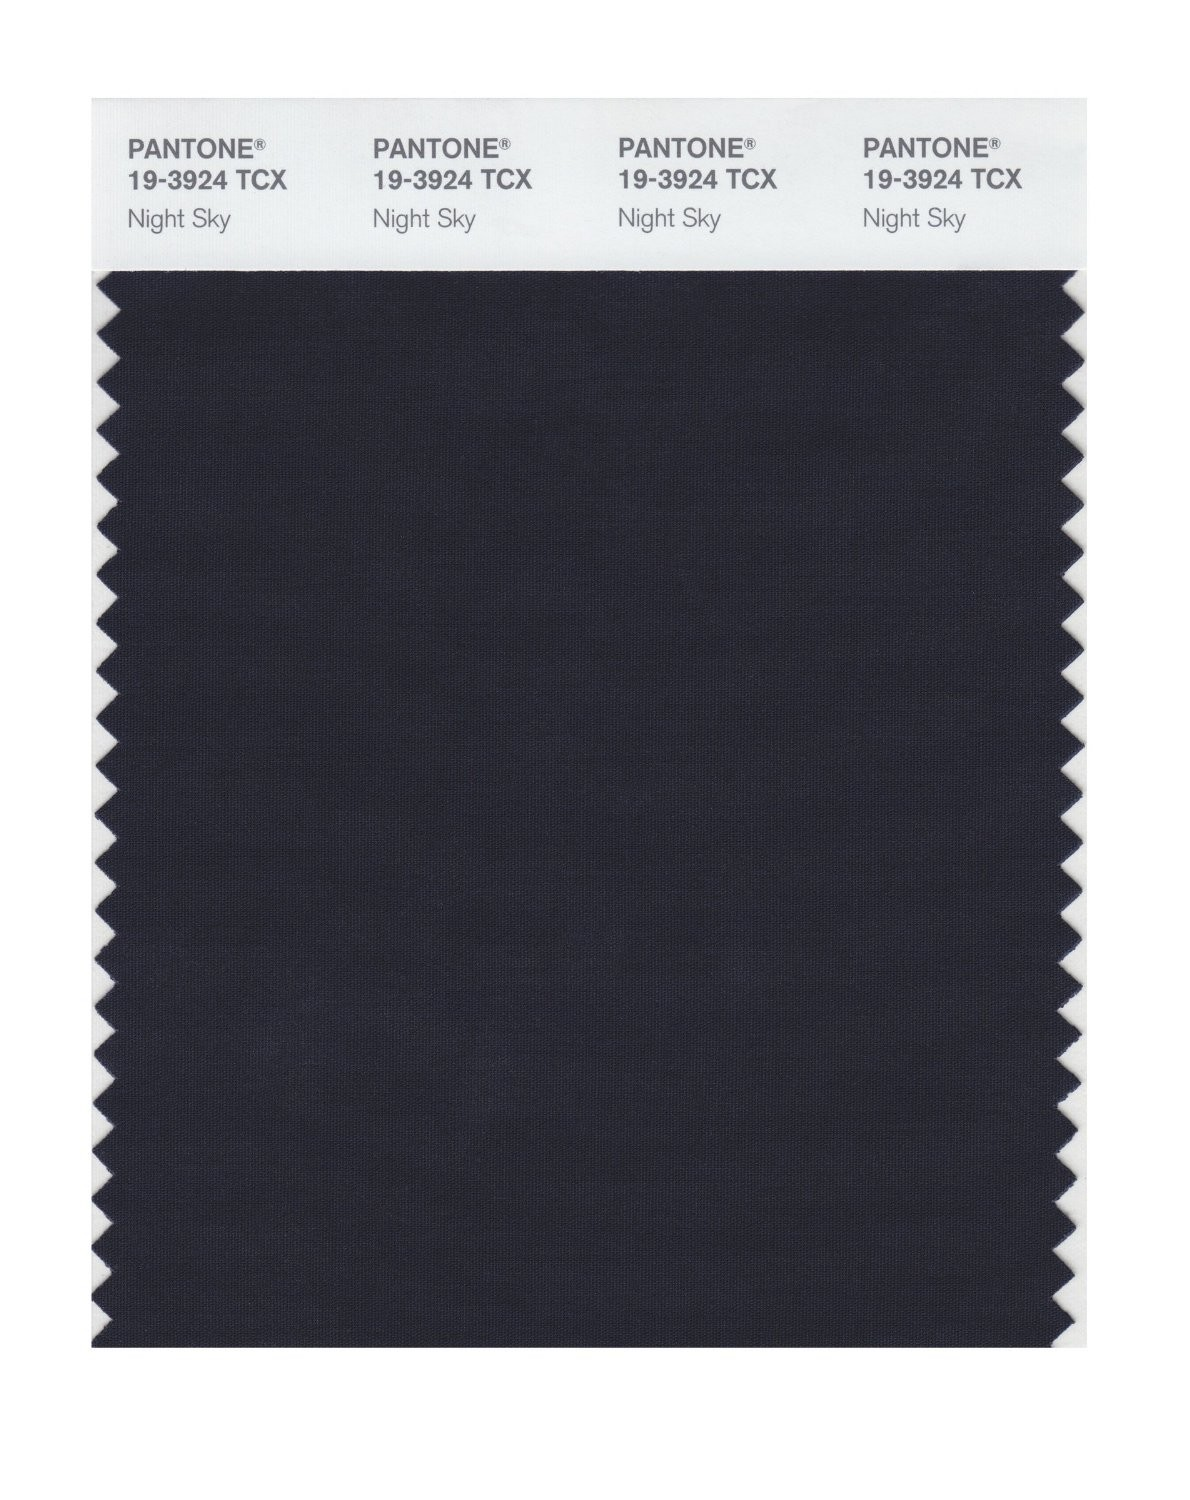 Pantone 19-3924 TCX Swatch Card Night Sky